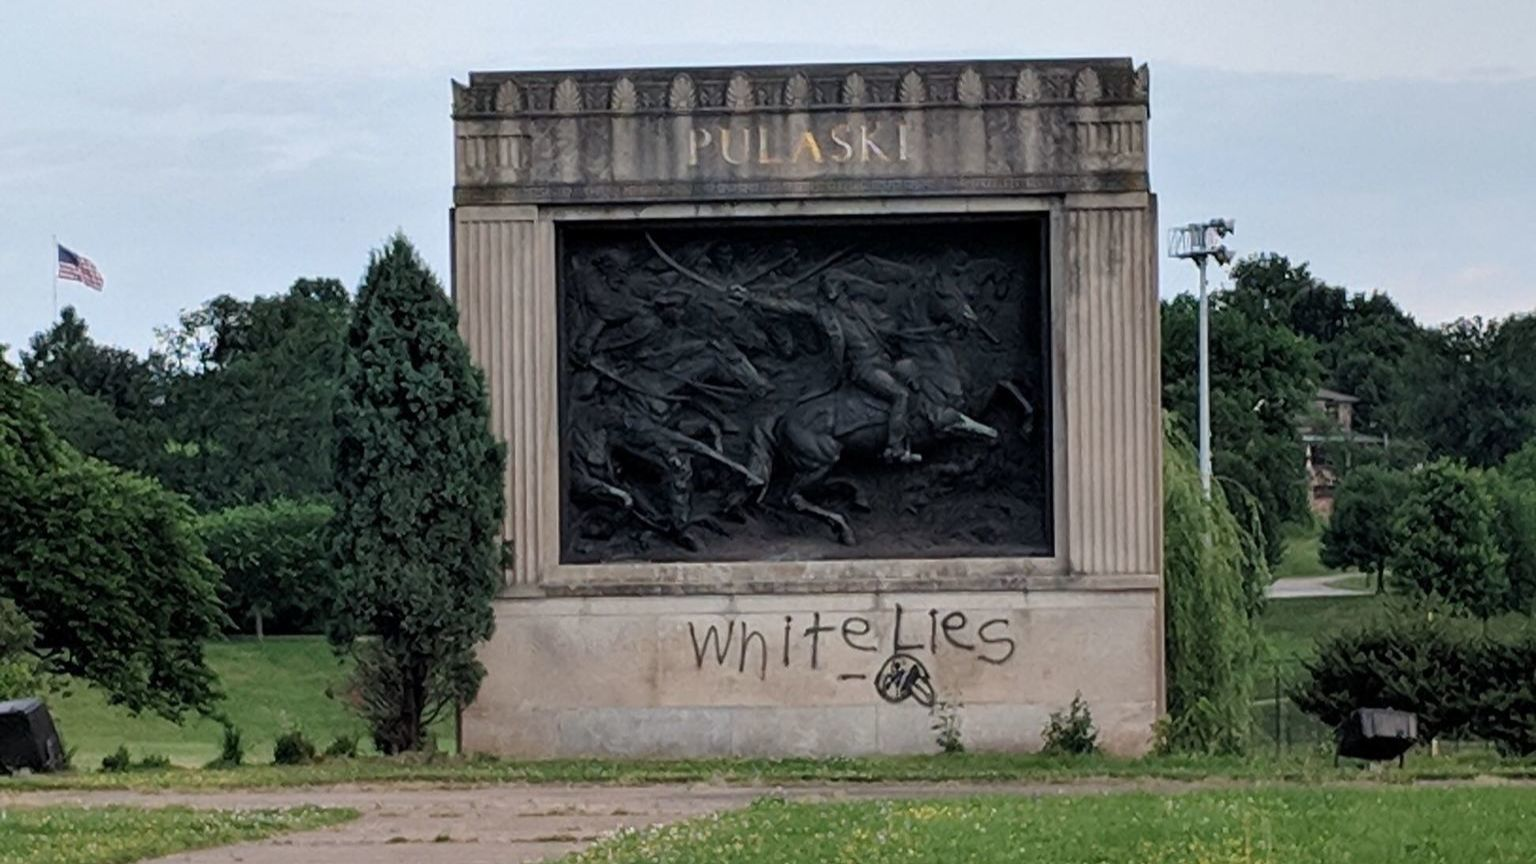 Graffiti appears on Pulaski Monument in Patterson Park, group says